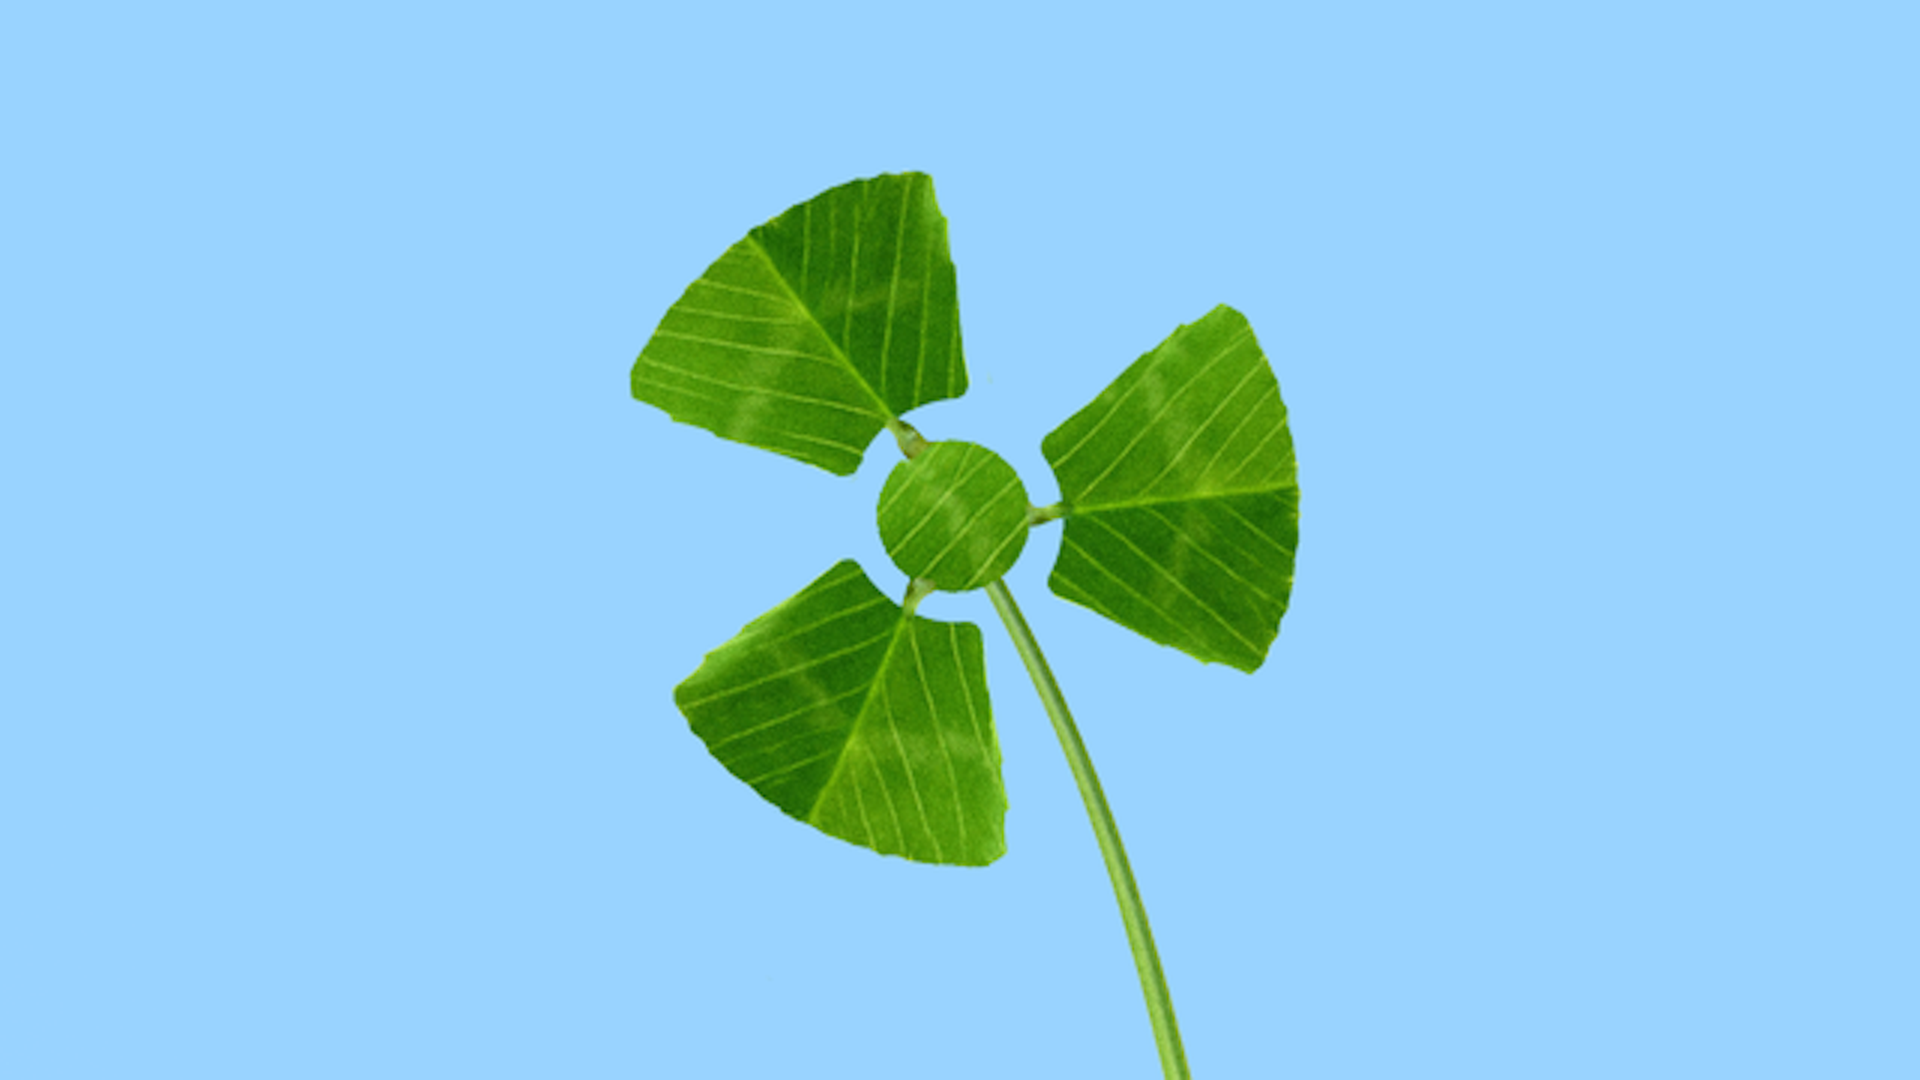 In this illustration, a three leaf clover is shaped like a nuclear power symbol.